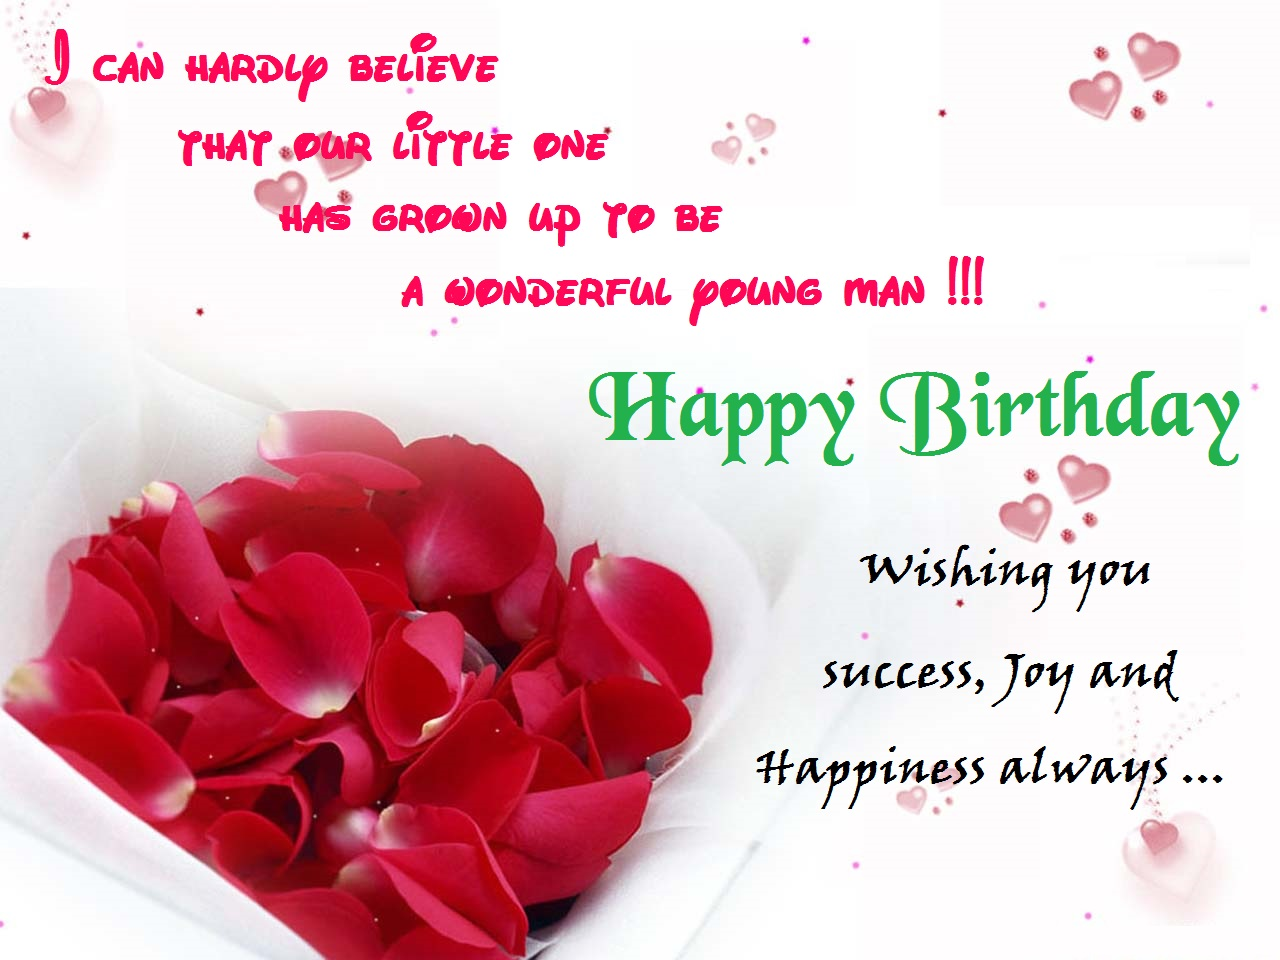 birthday wishes wallpaper hd ; happy-birthday-wishes-card-full-HD-wallpaper